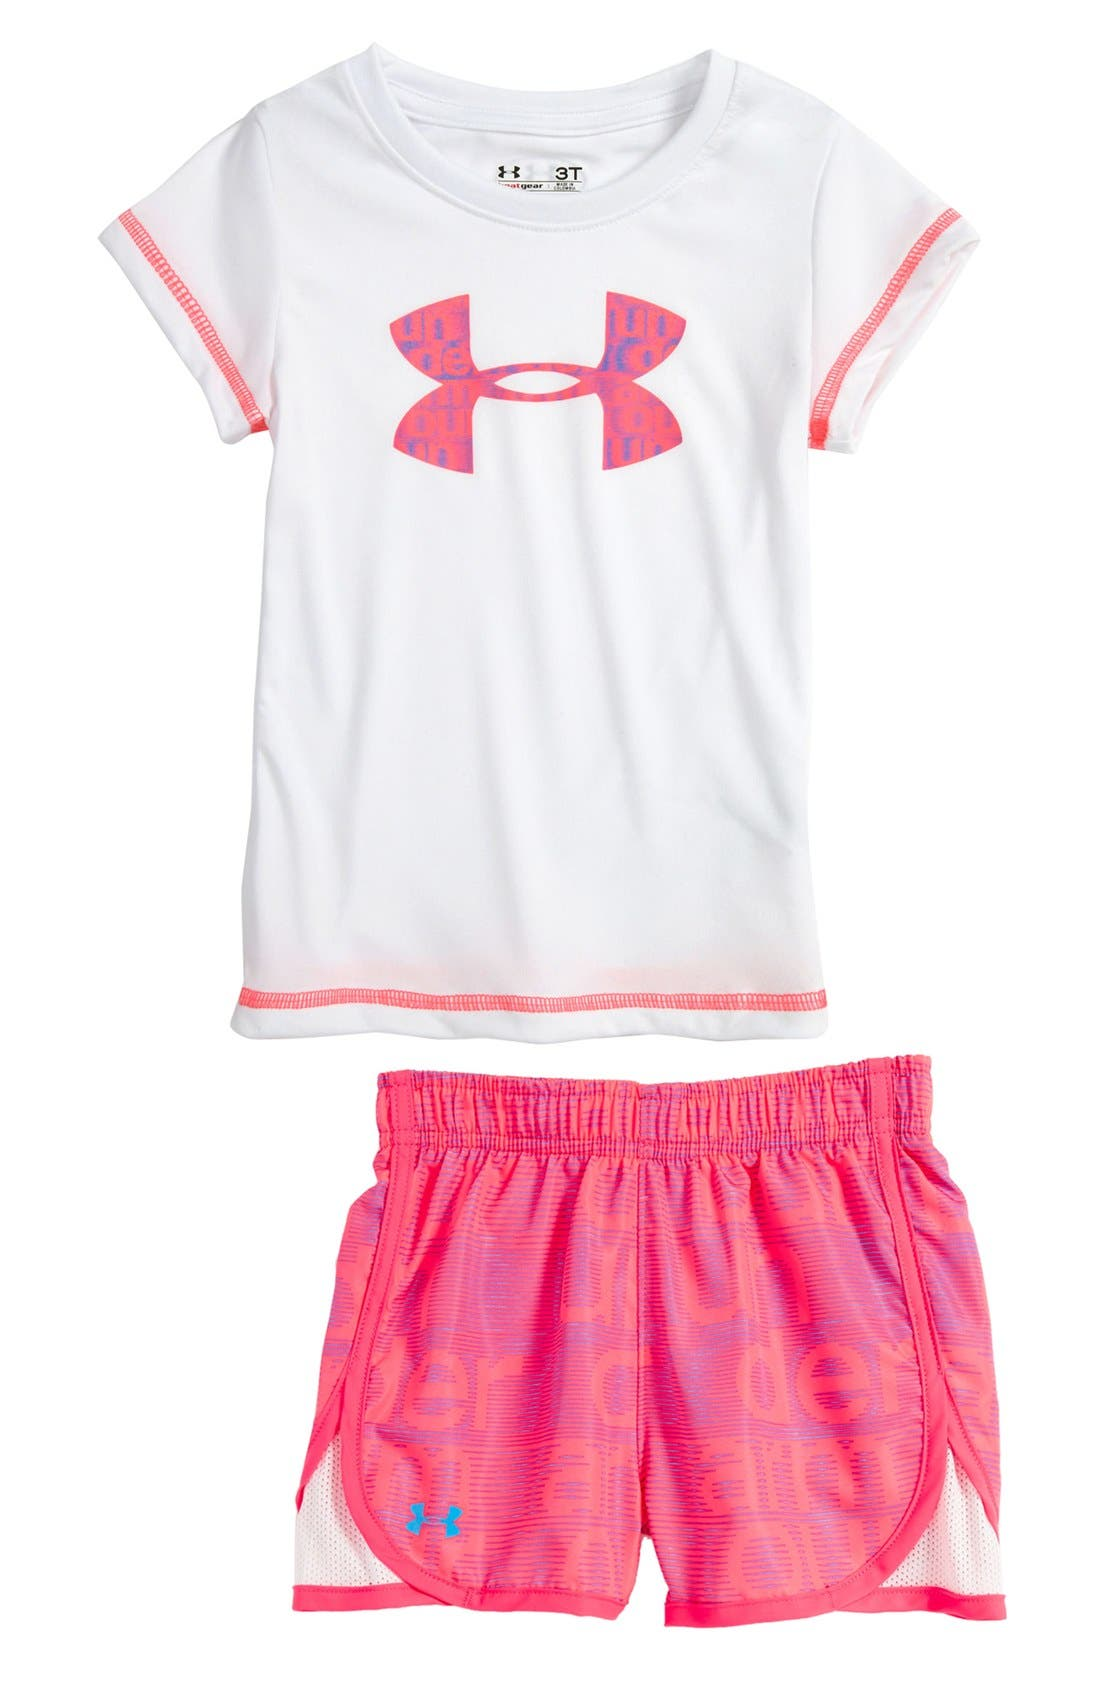 Alternate Image 1 Selected - Under Armour Tee & Shorts (Toddler)